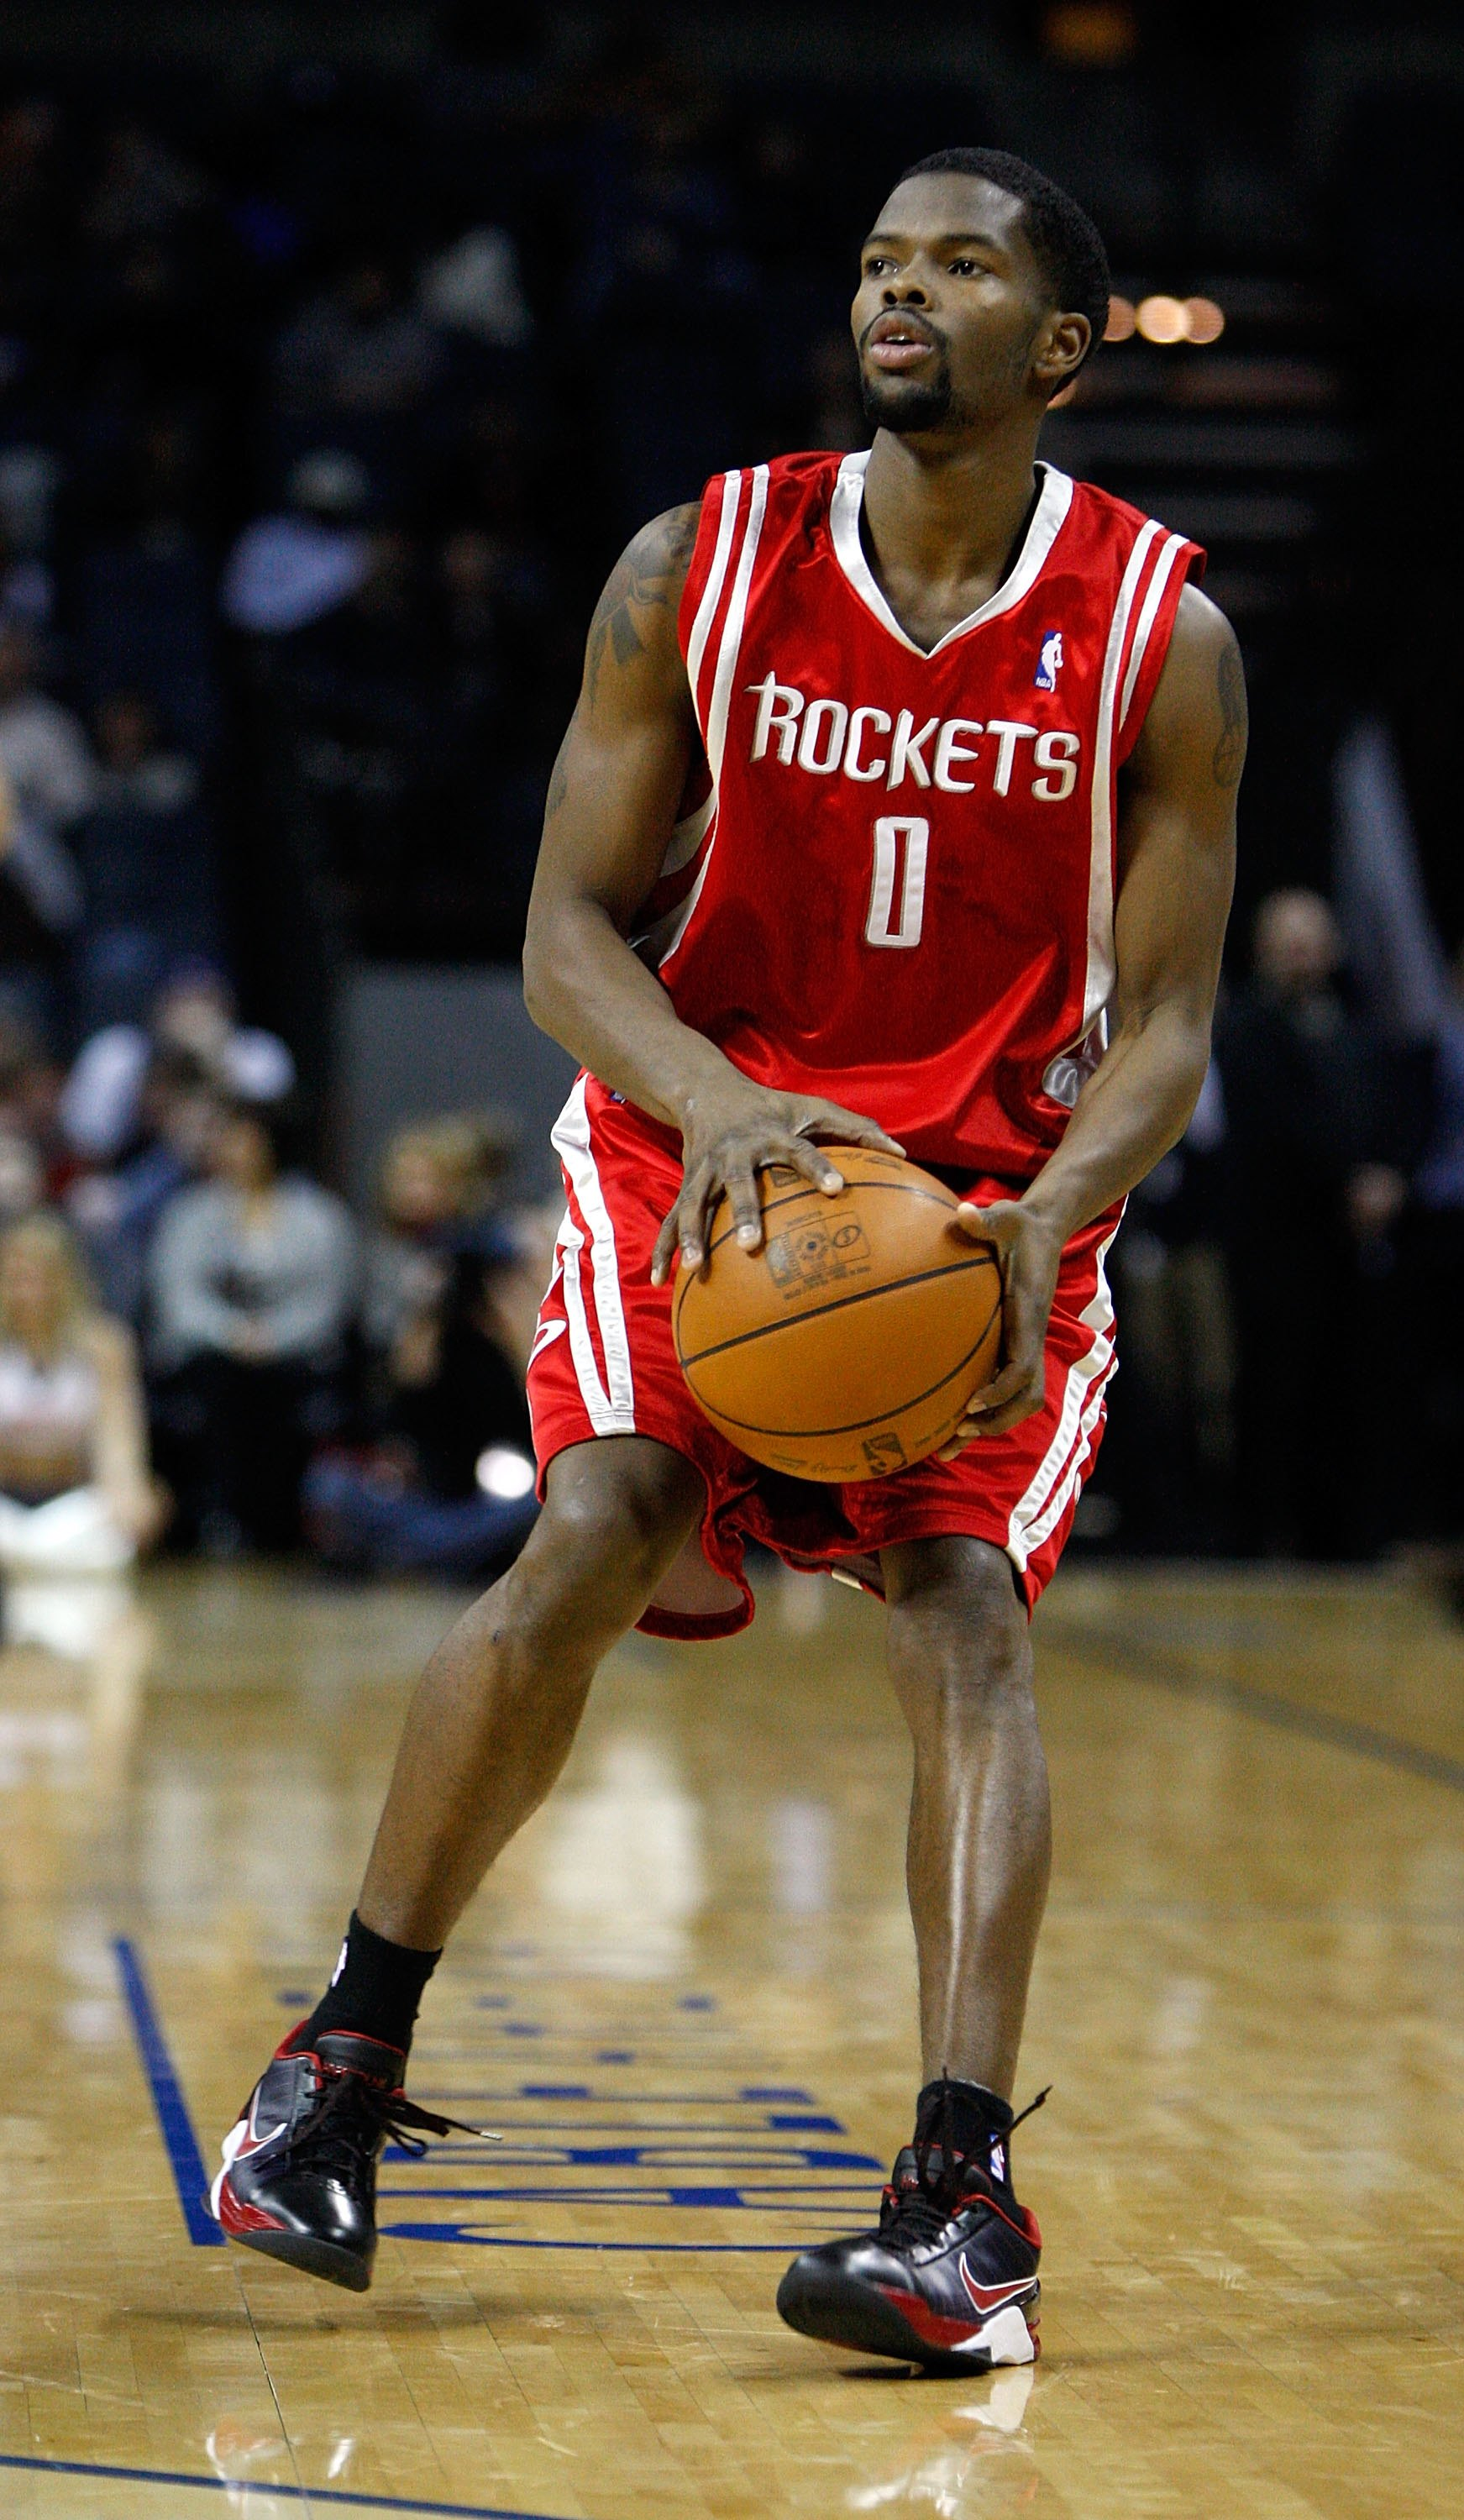 CHARLOTTE, NC - JANUARY 12:  Aaron Brooks #0 of the Houston Rockets shoots during the game against the Charlotte Bobcats on January 12, 2010 at Time Warner Cable Arena in Charlotte, North Carolina.  The Bobcats won 102-94.  NOTE TO USER: User expressly ac